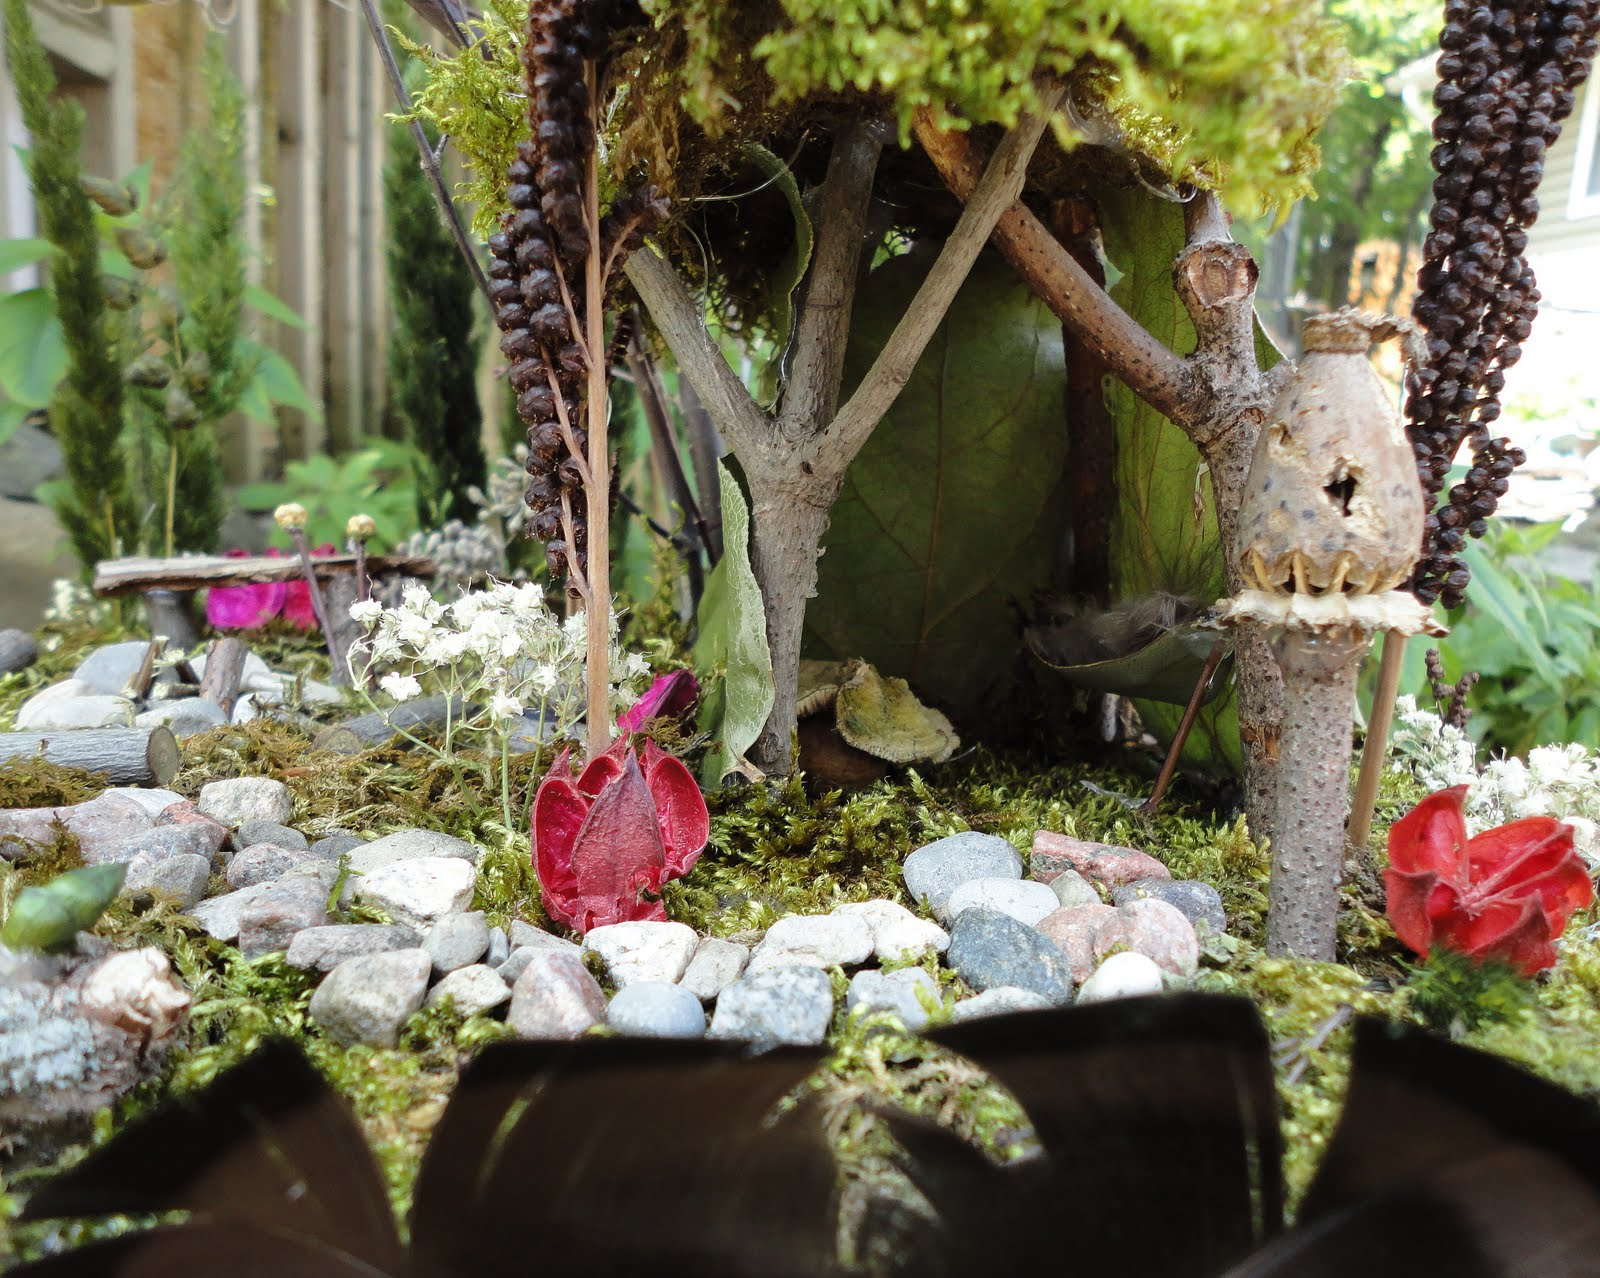 On The Forest Floor Sits A Tiny House Made Of Sticks Leaves And Moss